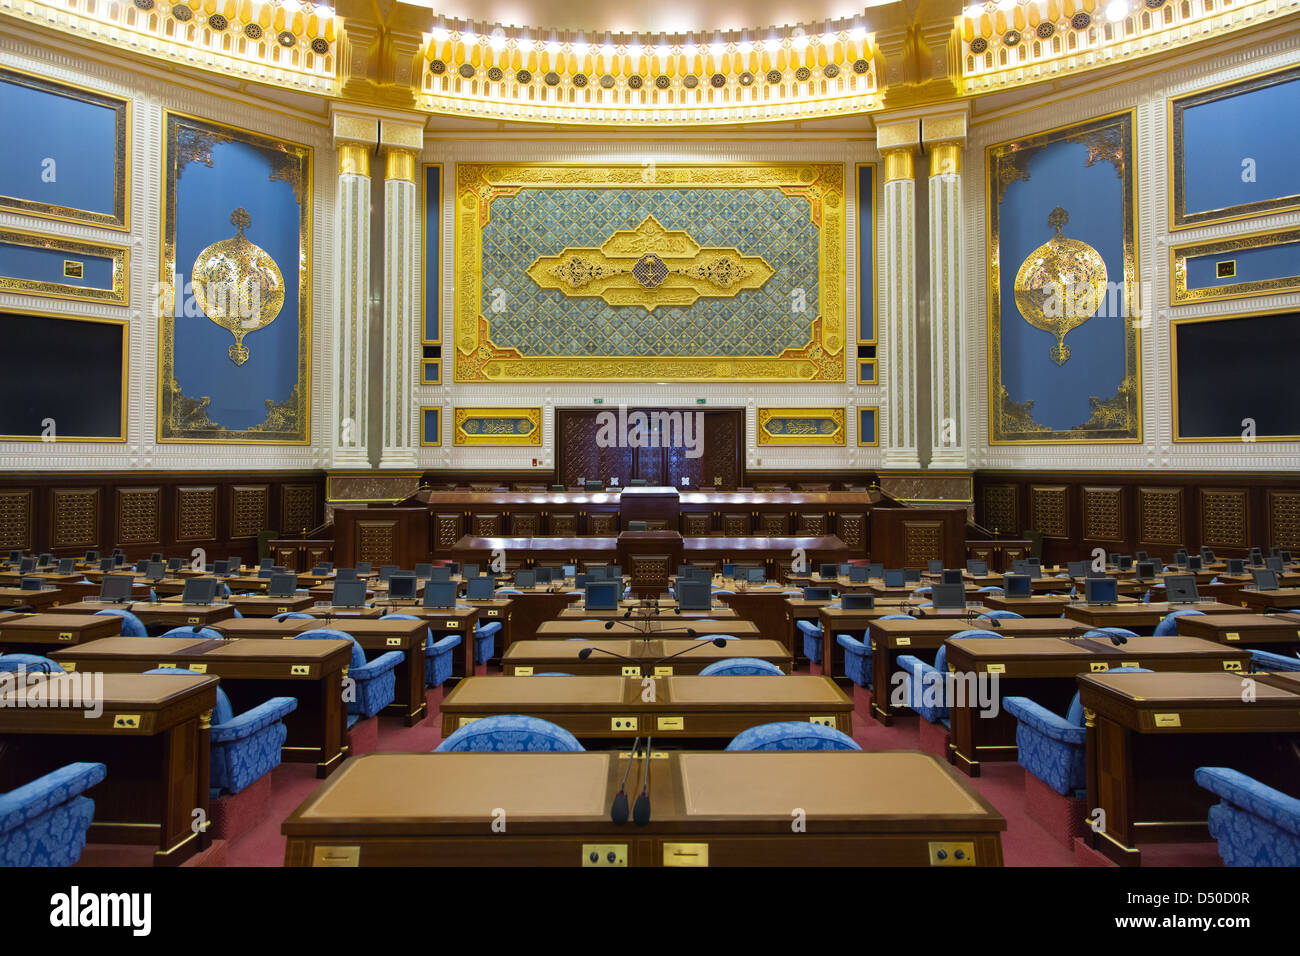 The ceremonial Parliament chamber in Rhiyhd, Saudi Arabia used by the Consultative Assembly of Saudi Arabia - Stock Image